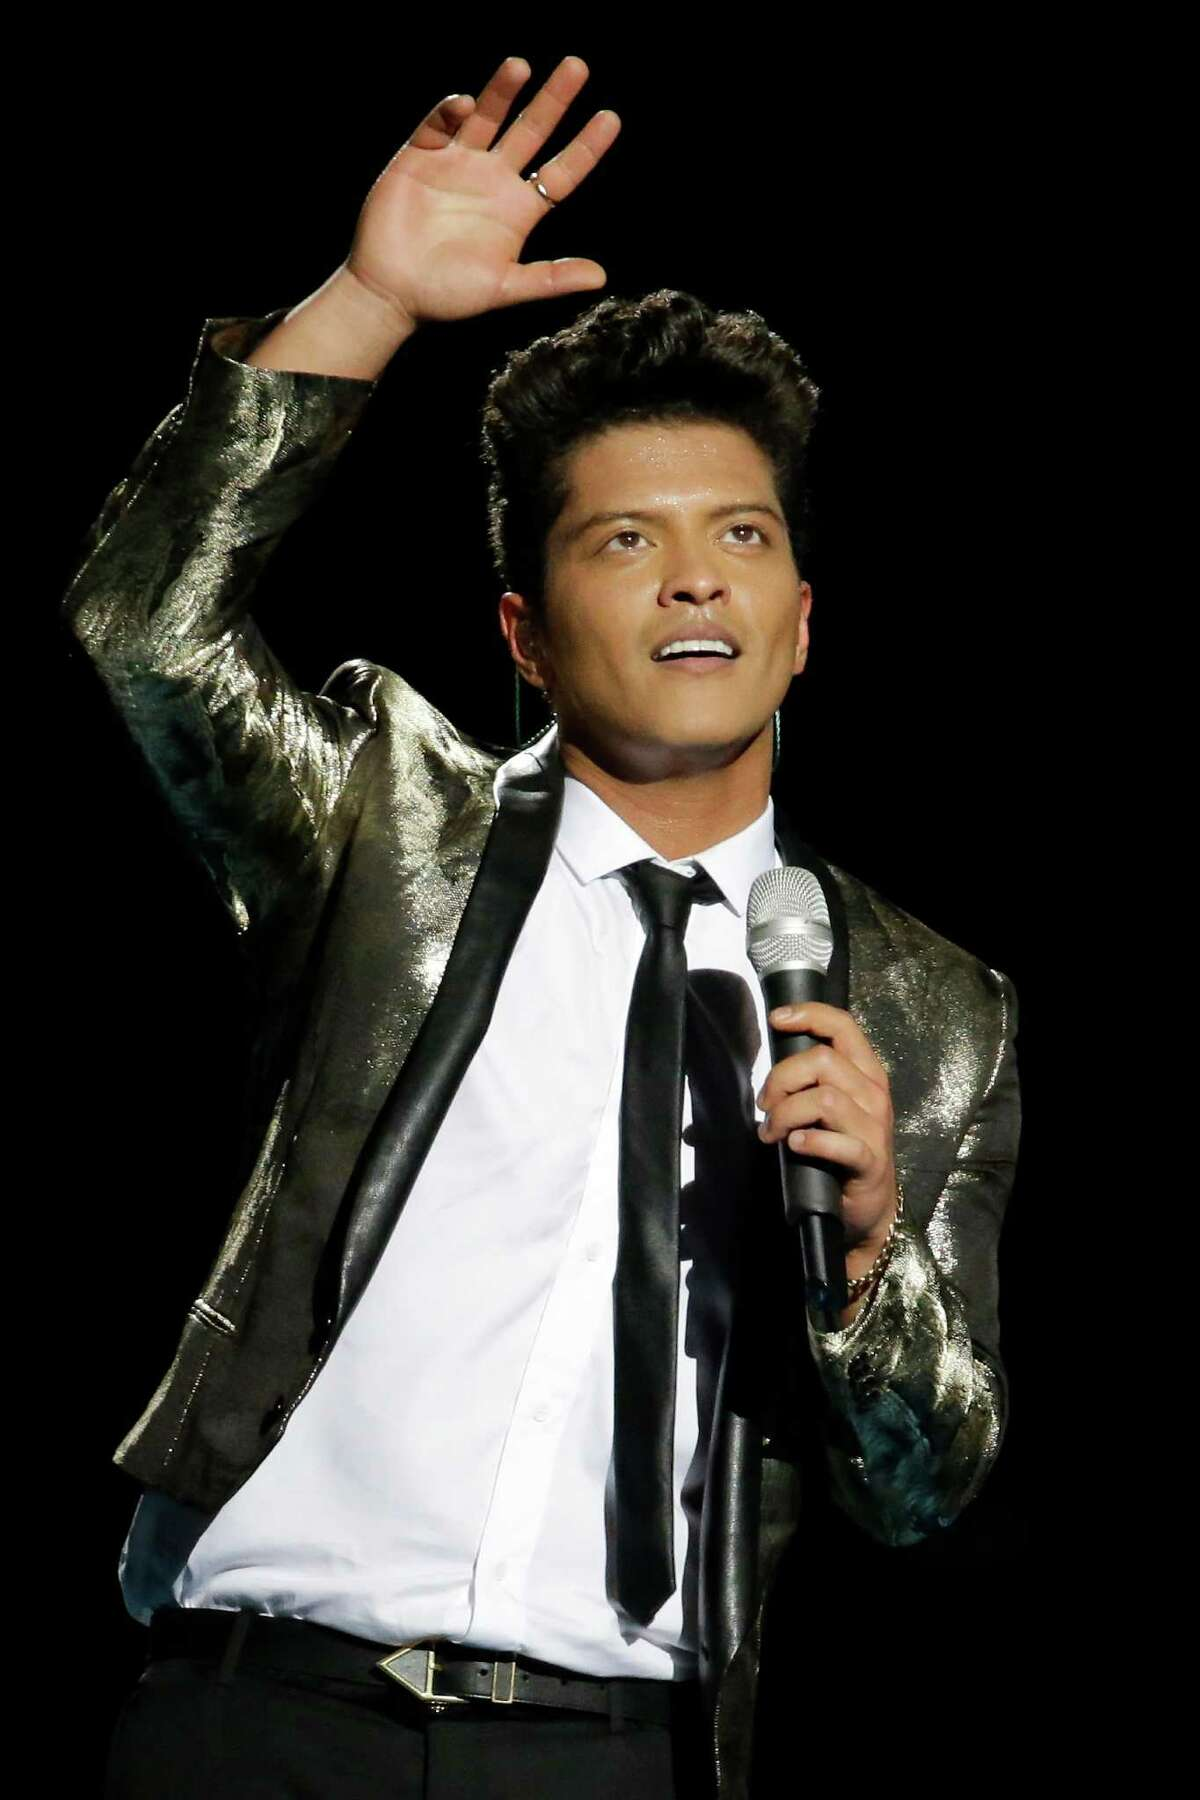 Bruno Mars performs during the halftime show of the NFL Super Bowl XLVIII football game Sunday, Feb. 2, 2014, in East Rutherford, N.J. (AP Photo/Mark Humphrey) ORG XMIT: SB437